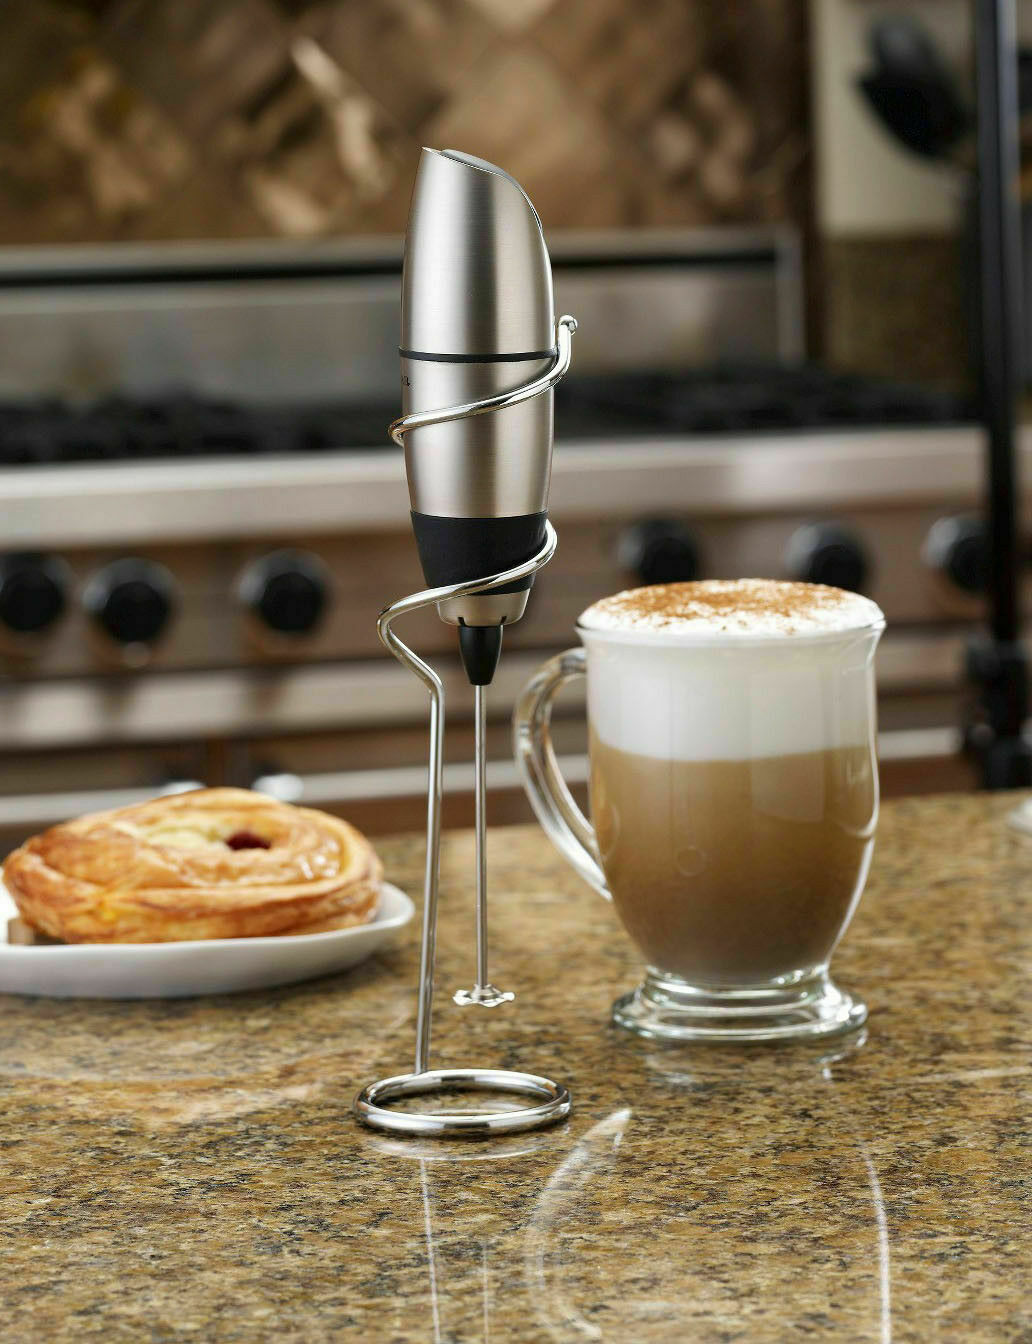 Cafe Latte Frother in Black